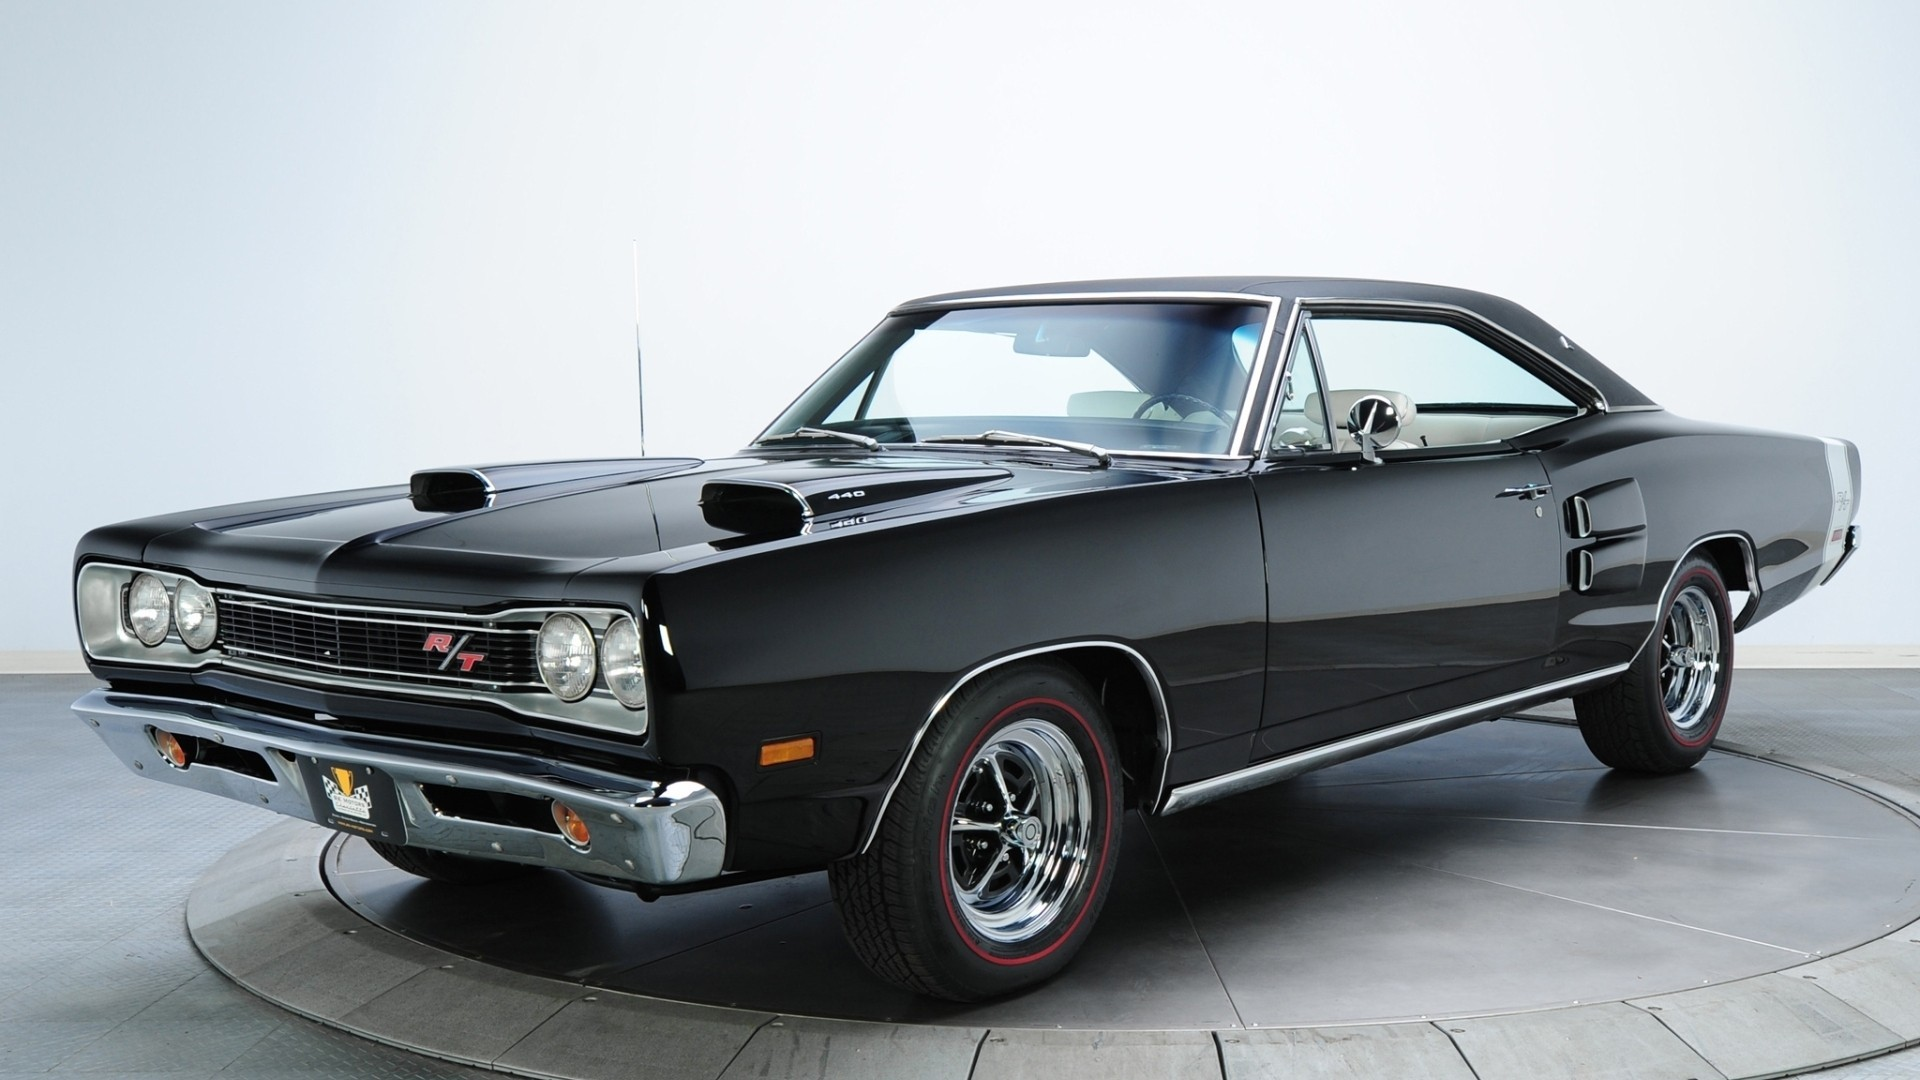 Black-Muscle-Cars-Black-classic-muscle-car-wallpaper-wp3603425